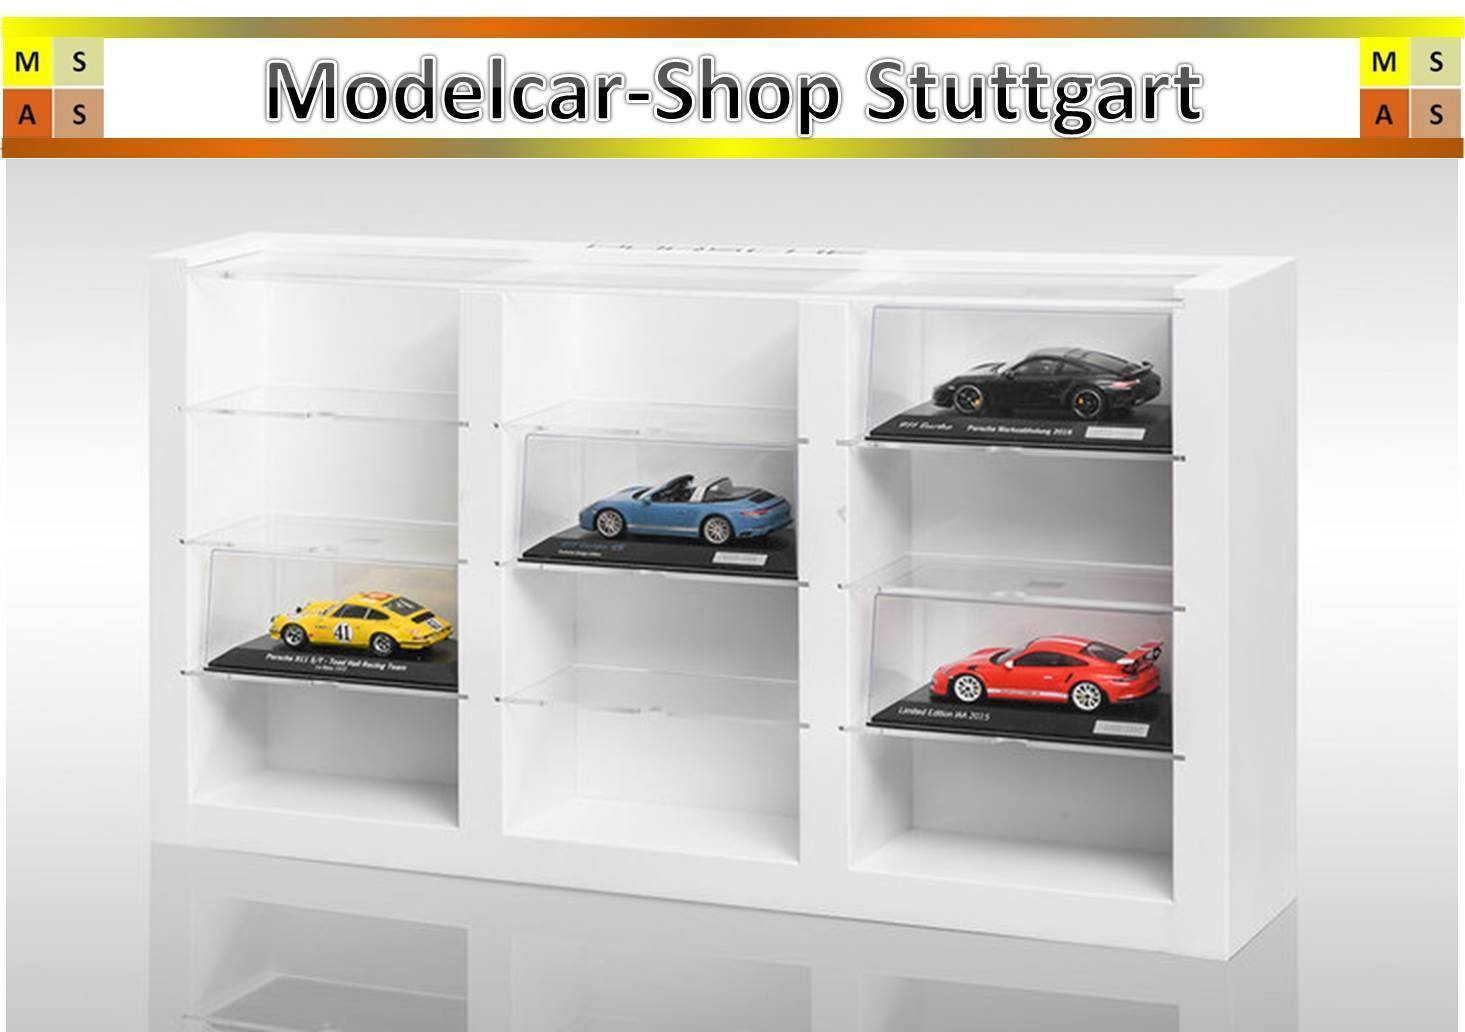 Porsche Model Car Display Case with Place for 12 Modellfahrzeuge on a Scale of 1